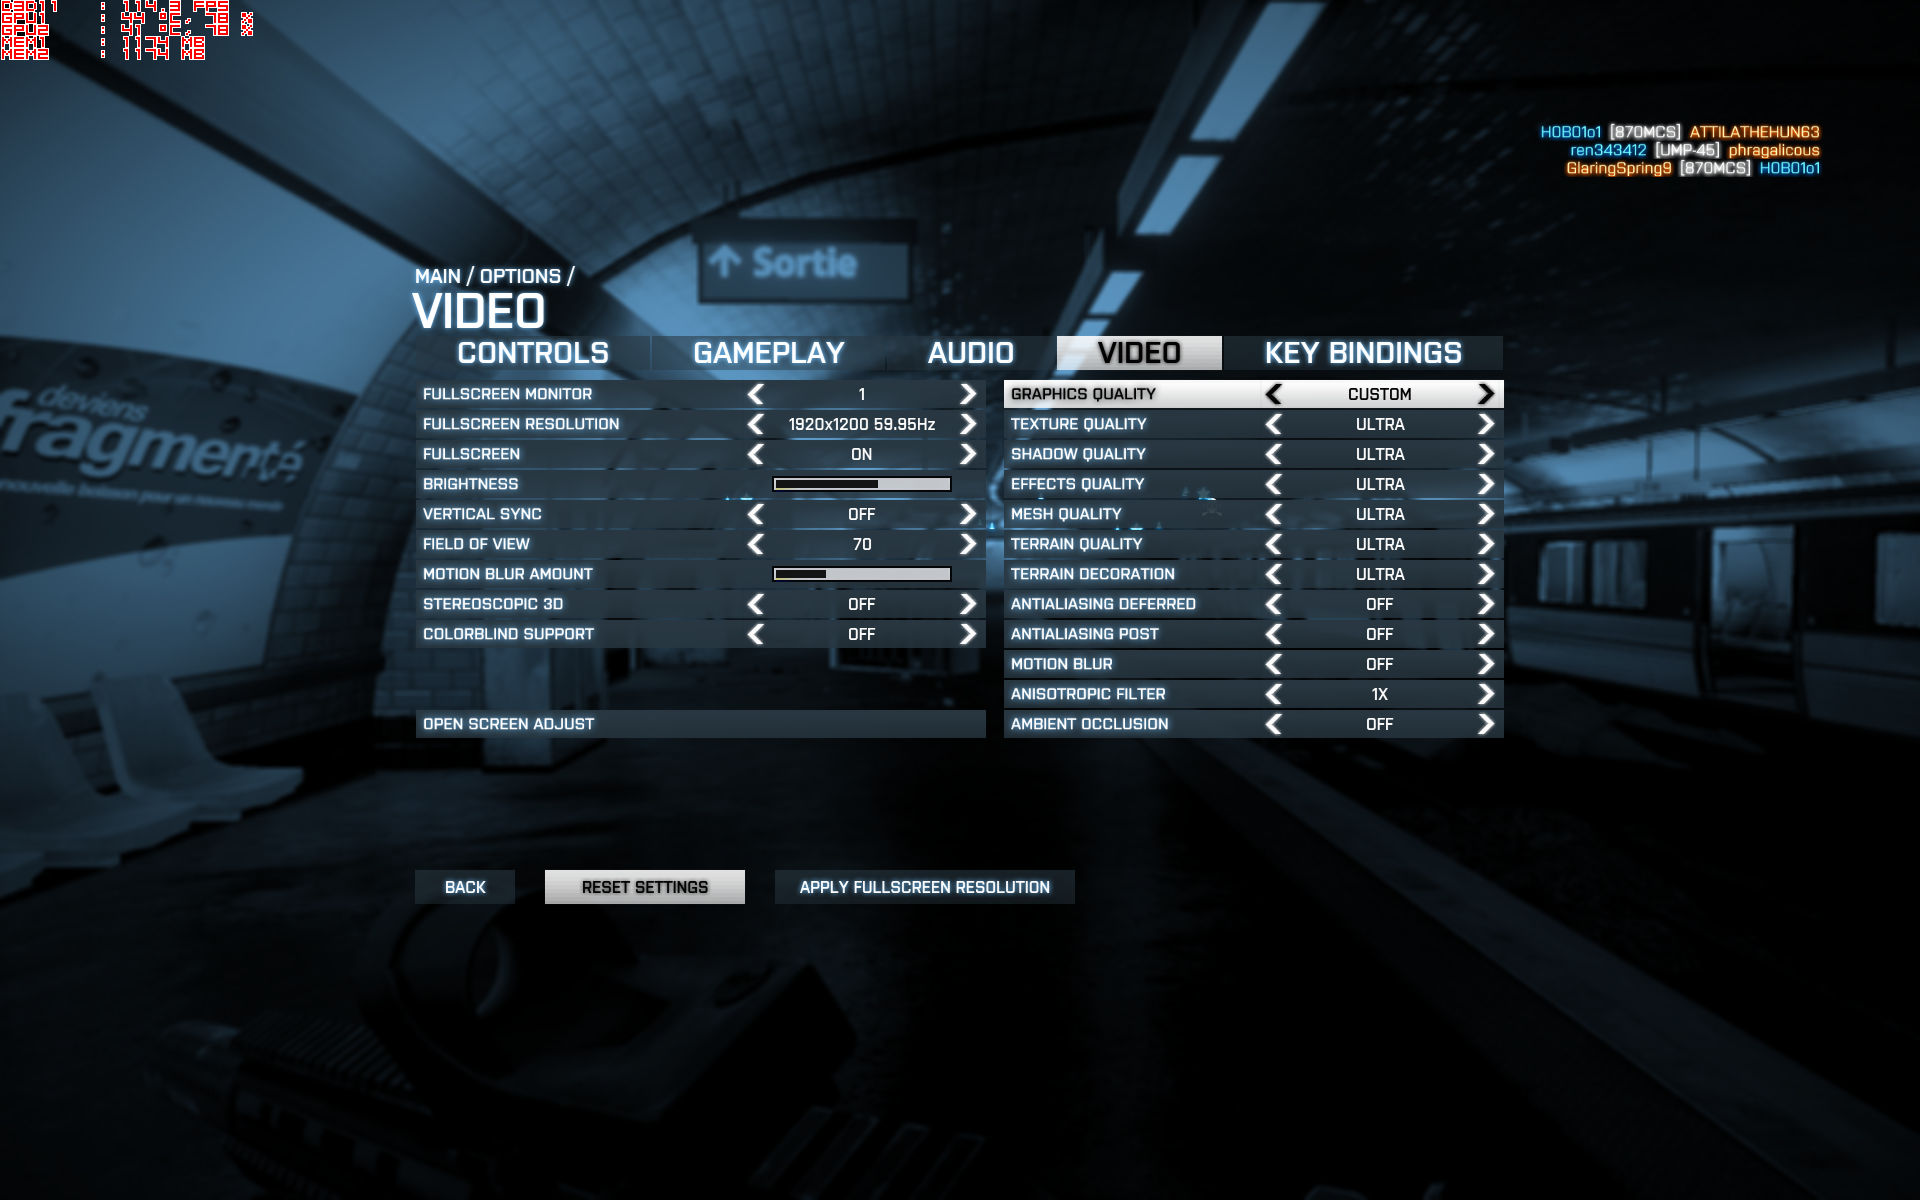 bf3_2012_02_12_23_21_59_214.png